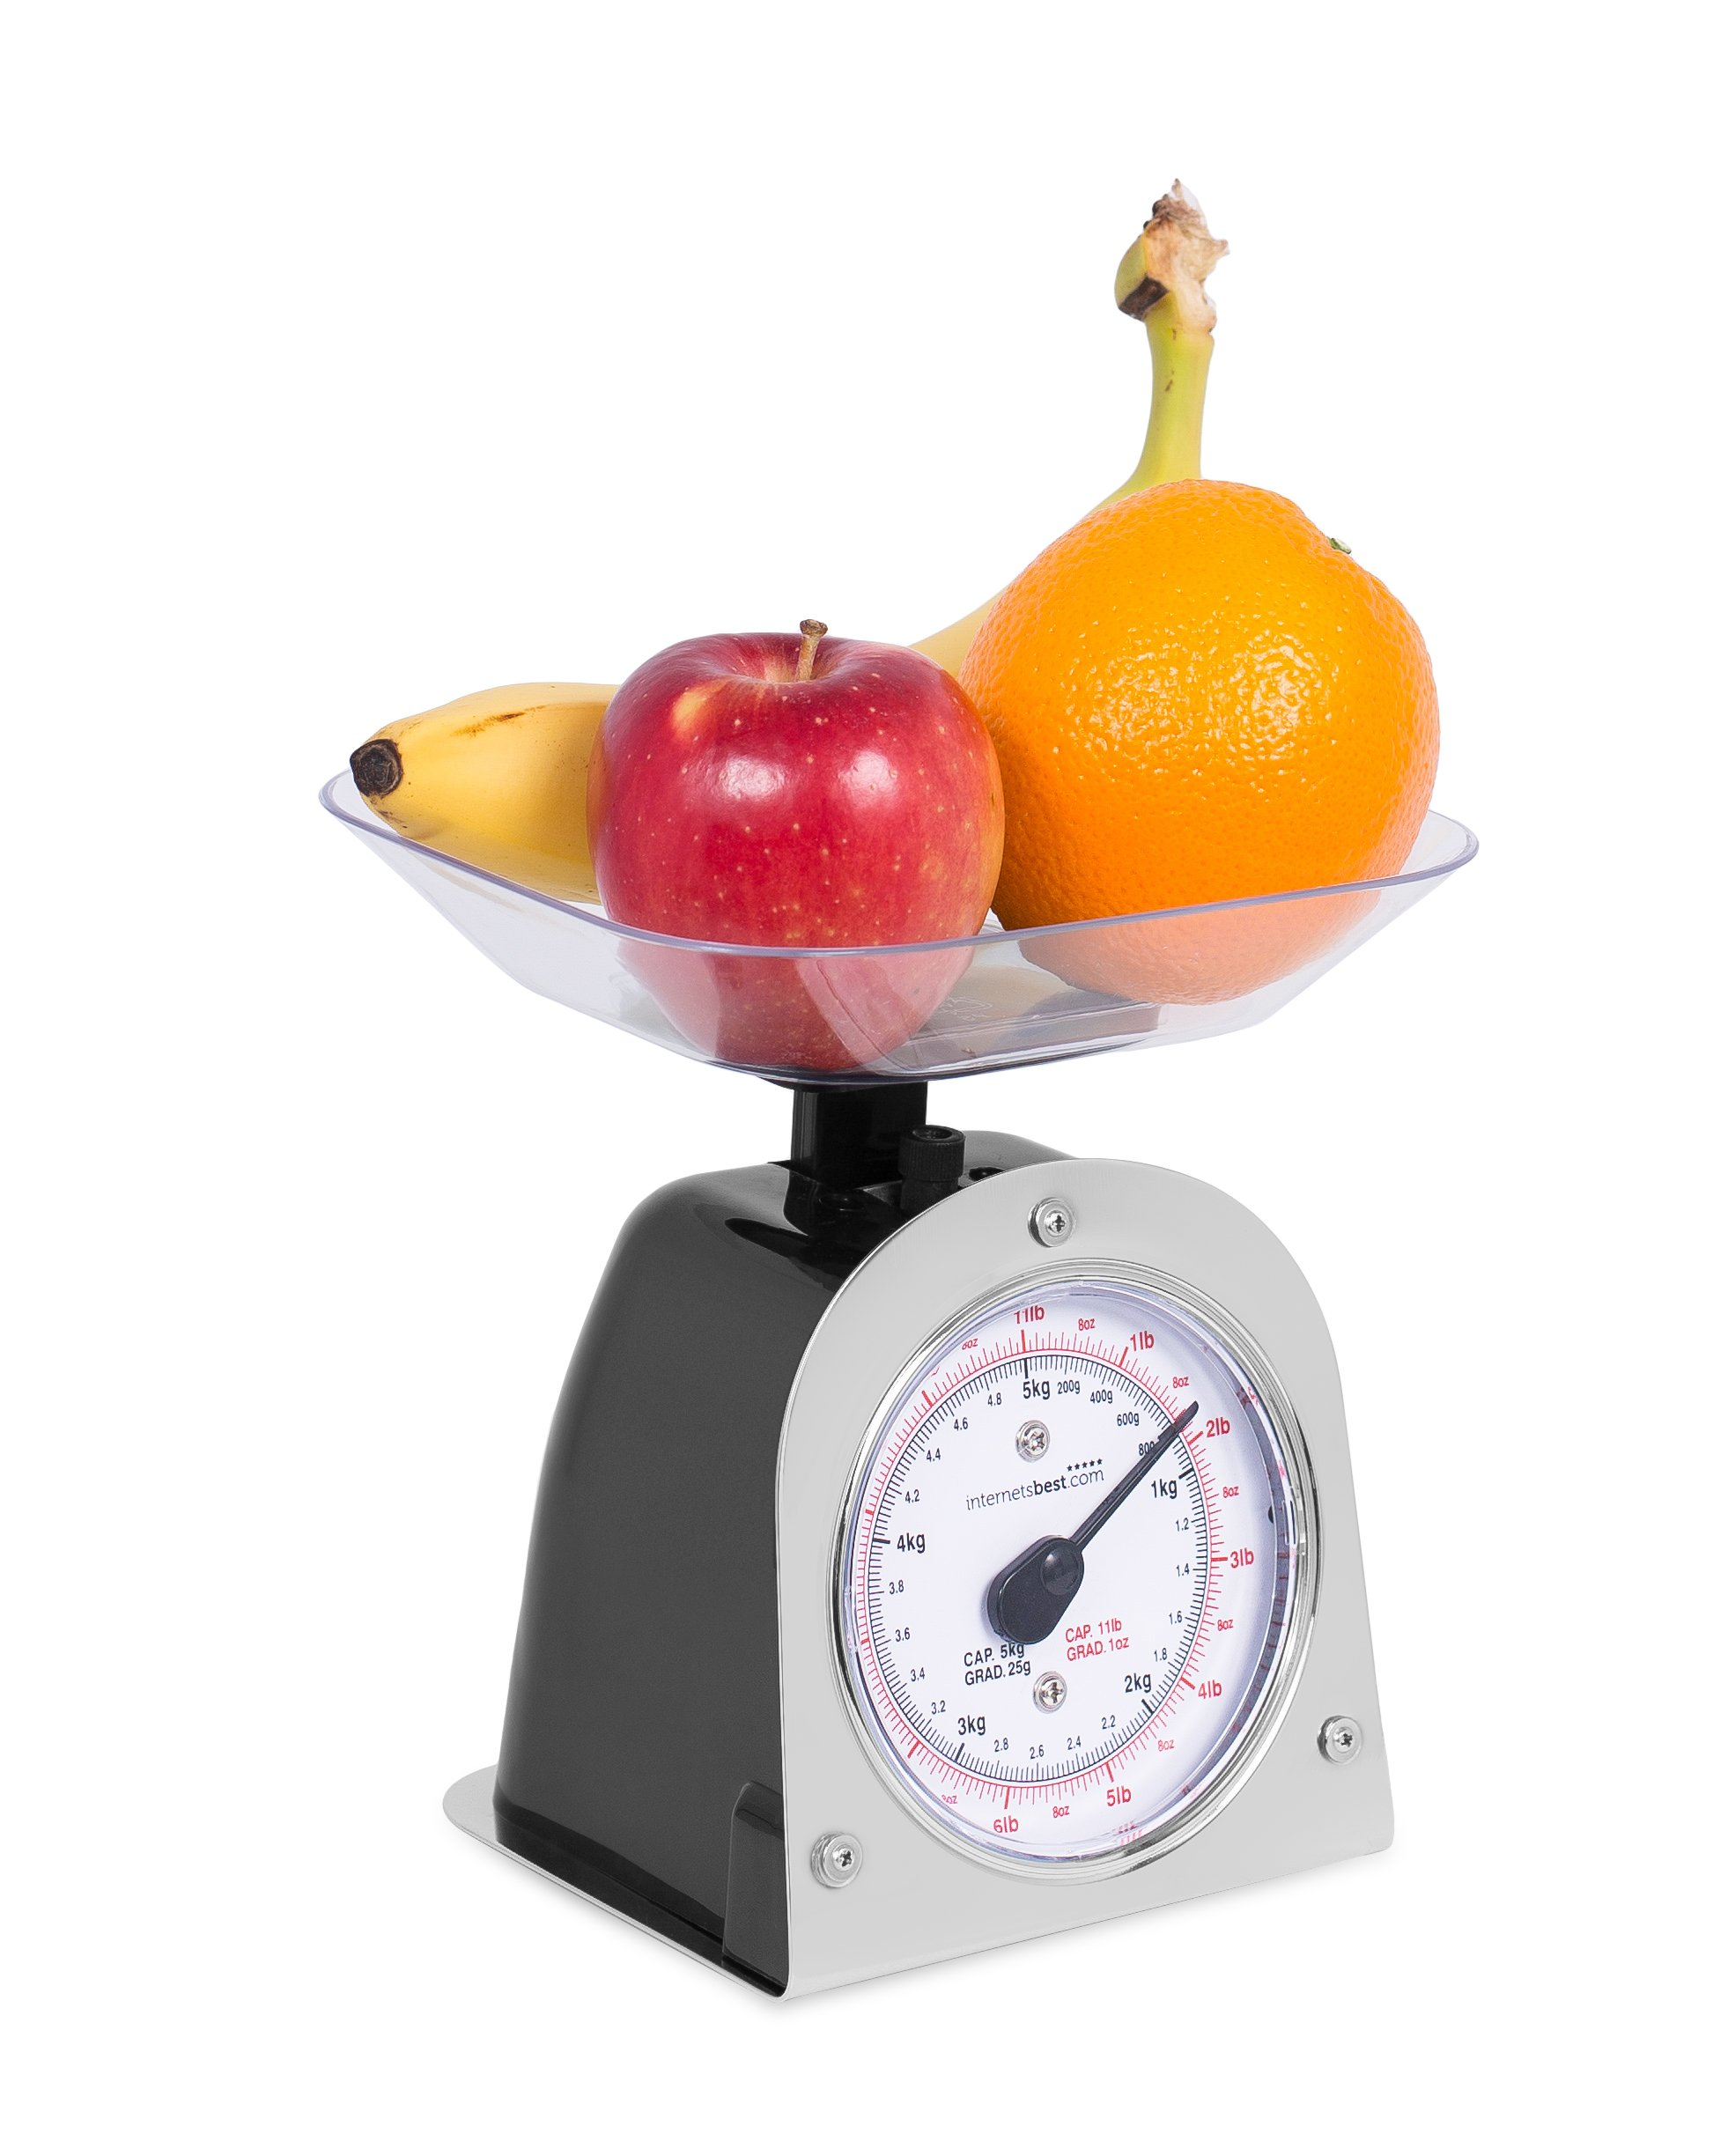 Internet's Best Mechanical Kitchen Food Weight Scale with Bowl | Accurate Measurements | Weighs Up 11 Lbs | 1KG - 5KG by Internet's Best (Image #2)